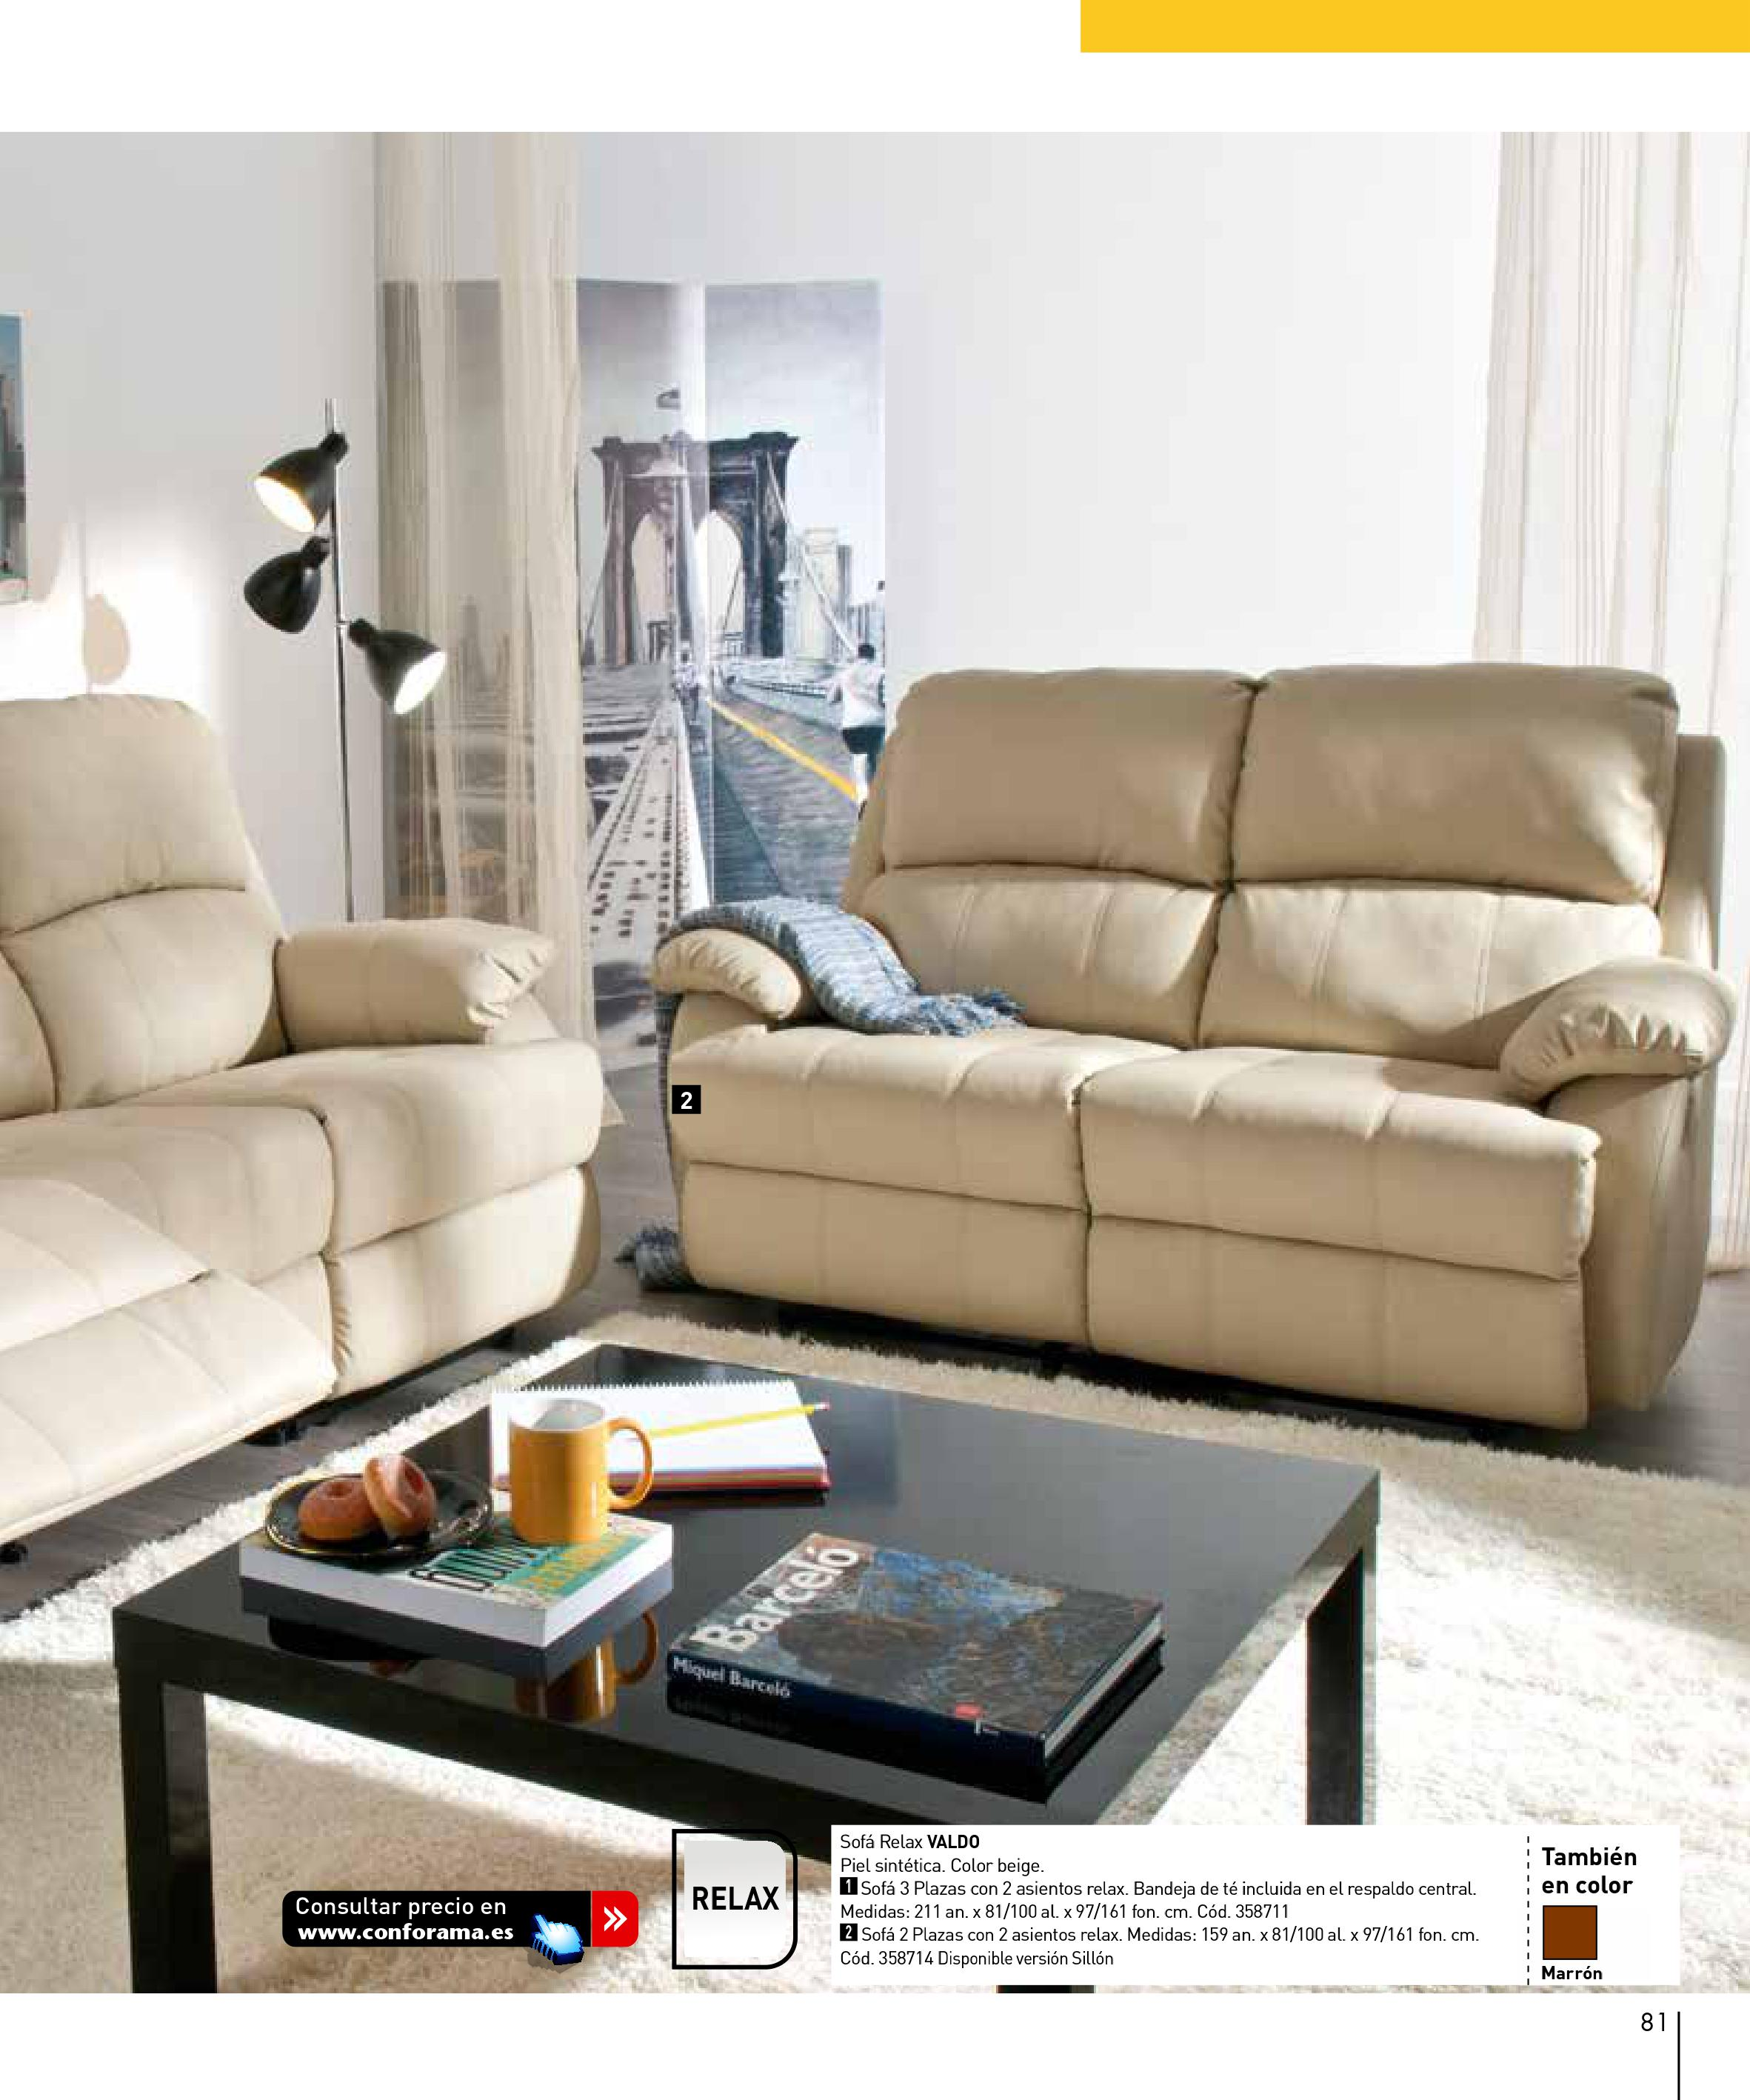 Sofas conforama 201581 for Sofas conforama catalogo